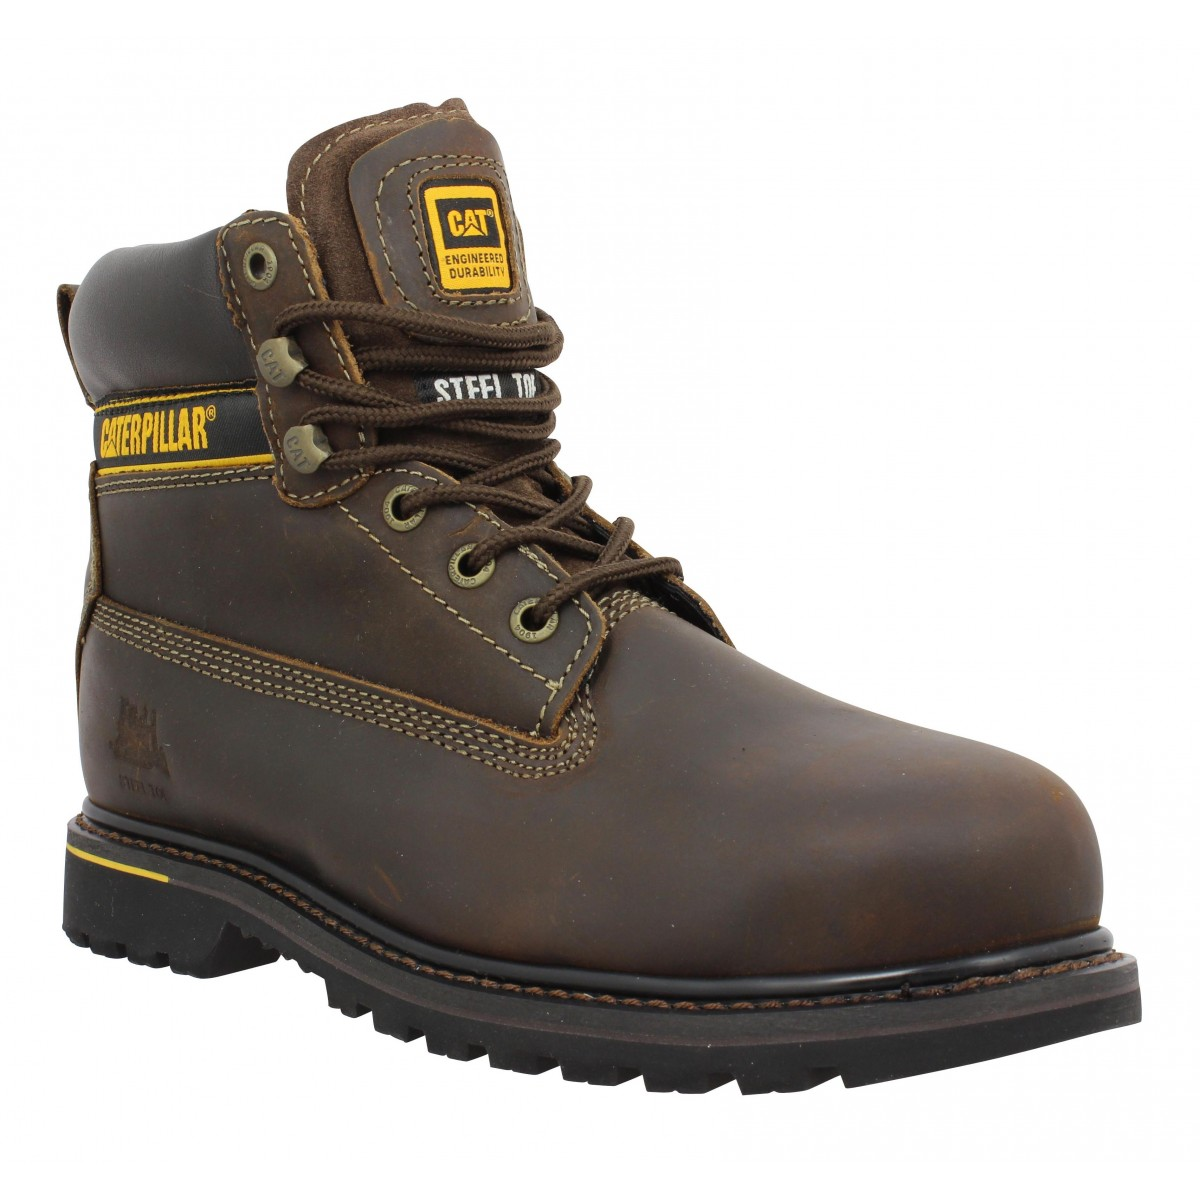 Caterpillar Homme Holton Cuir -41-marron...